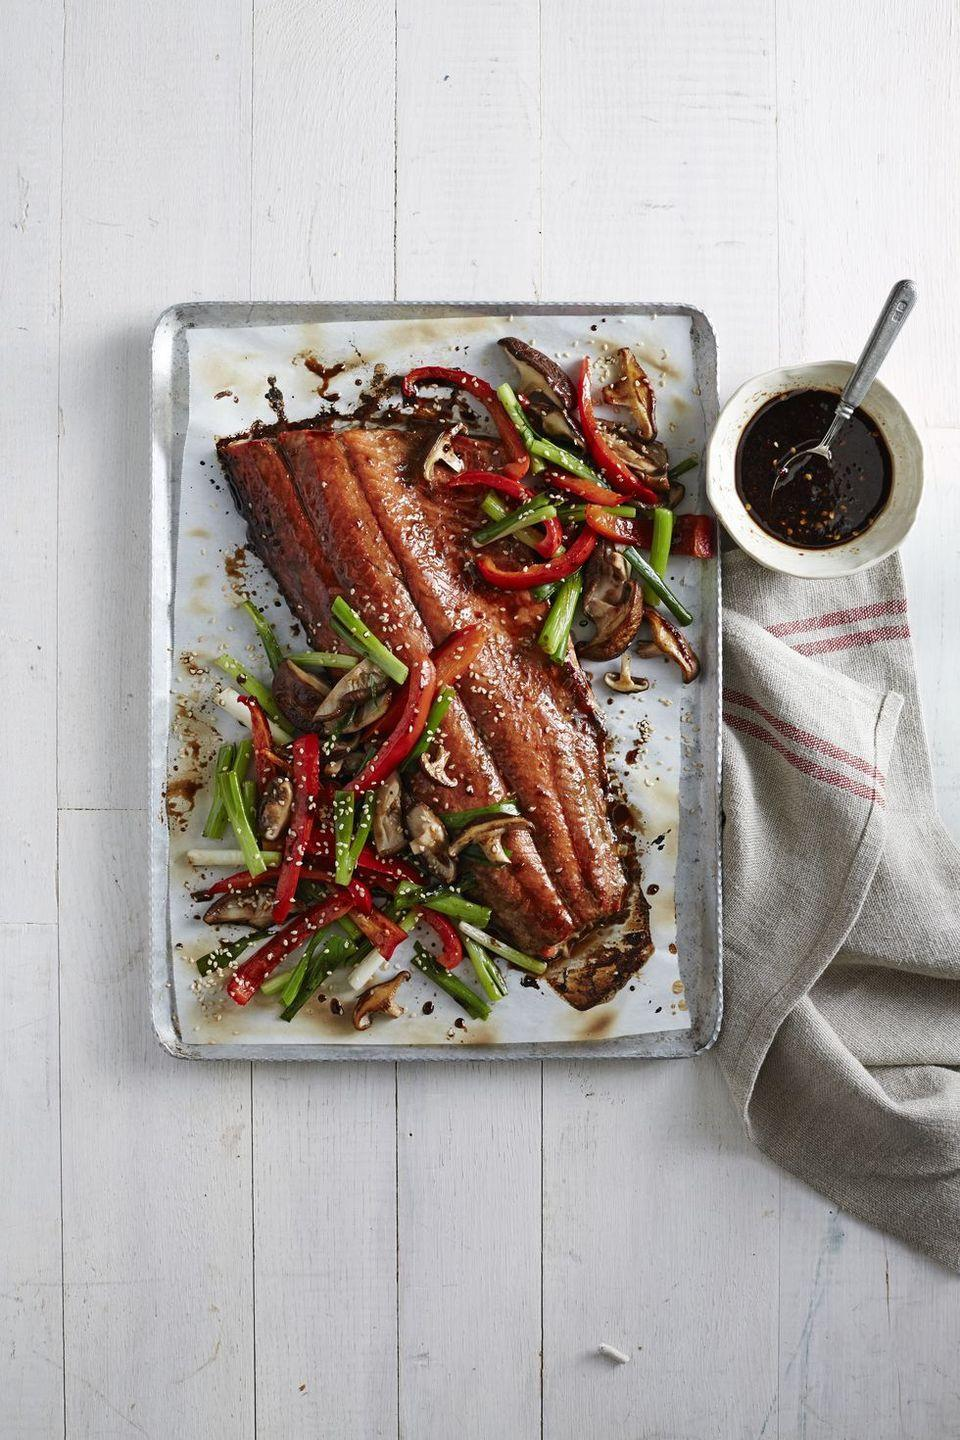 """<p>Peppers and mushrooms are the ideal pairing for sweet and savory honey-soy glazed salmon in this simple, one-pan Christmas dinner. The recipe makes enough for four, but all you need to do is choose a smaller piece of salmon if you're committed to avoiding leftovers.</p><p><em><a href=""""https://www.countryliving.com/food-drinks/recipes/a6126/honey-soy-glazed-salmon-mushrooms-peppers-recipe-clx1214/"""" rel=""""nofollow noopener"""" target=""""_blank"""" data-ylk=""""slk:Get the recipe for Honey-Soy Glazed Salmon with Mushrooms and Peppers »"""" class=""""link rapid-noclick-resp"""">Get the recipe for Honey-Soy Glazed Salmon with Mushrooms and Peppers »</a></em></p>"""